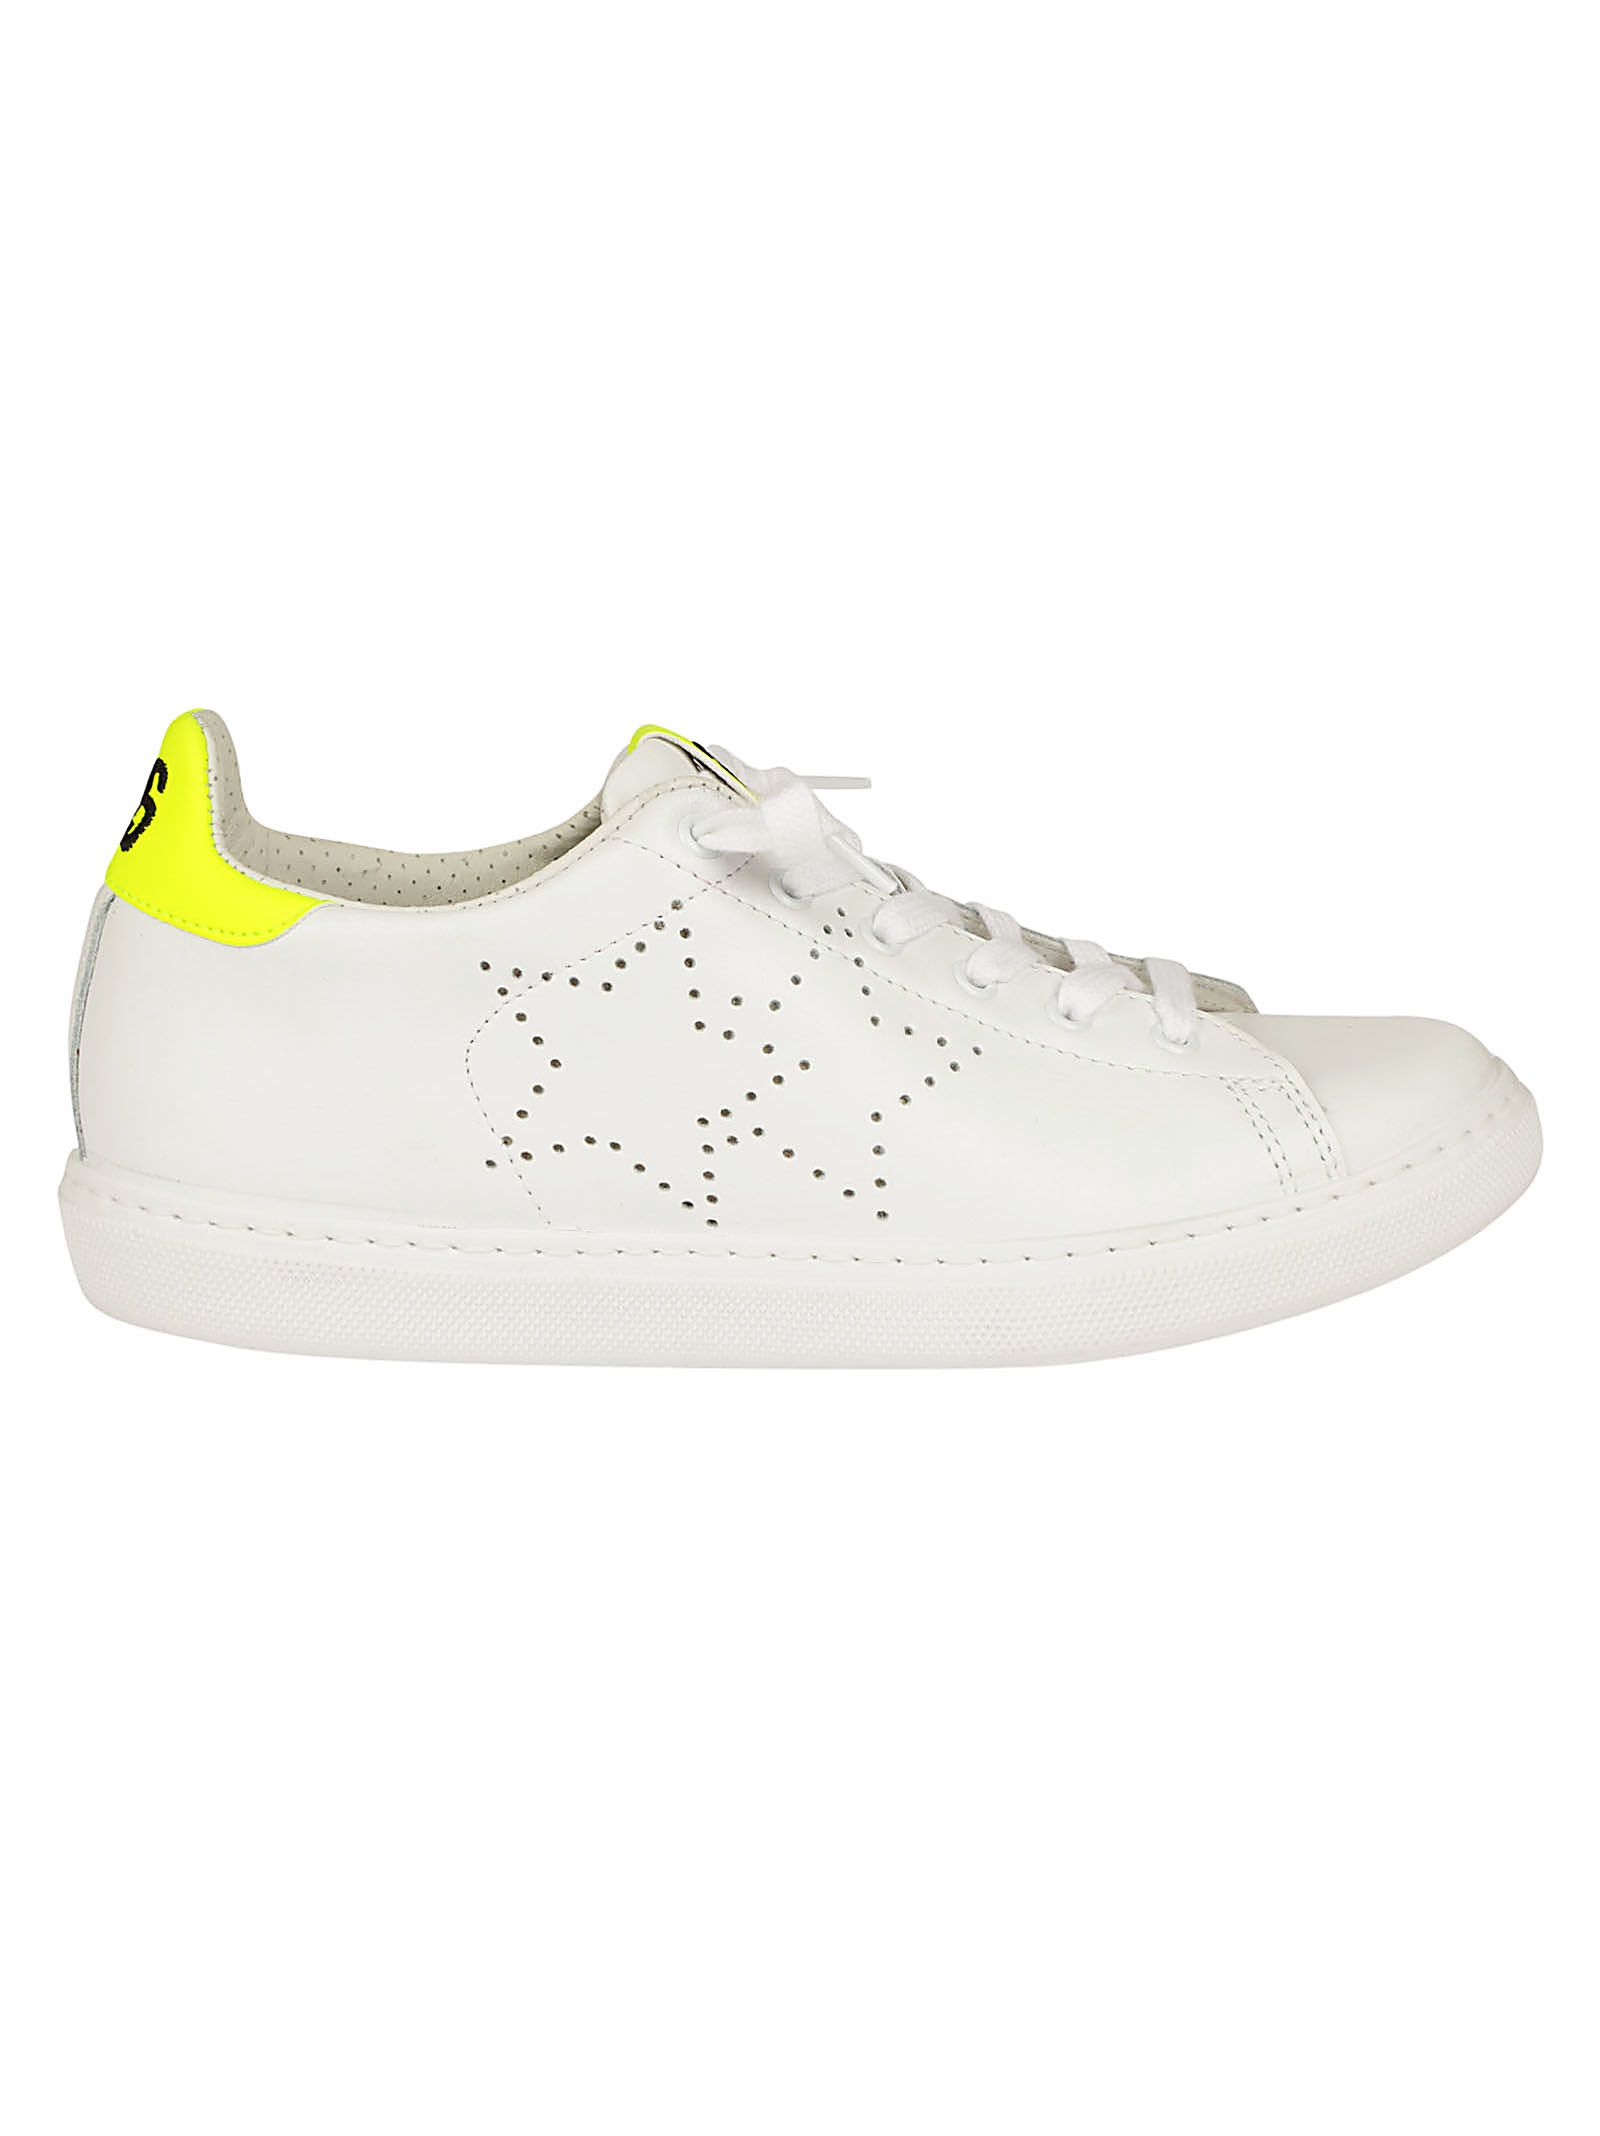 2star female 2star star perforated sneakers